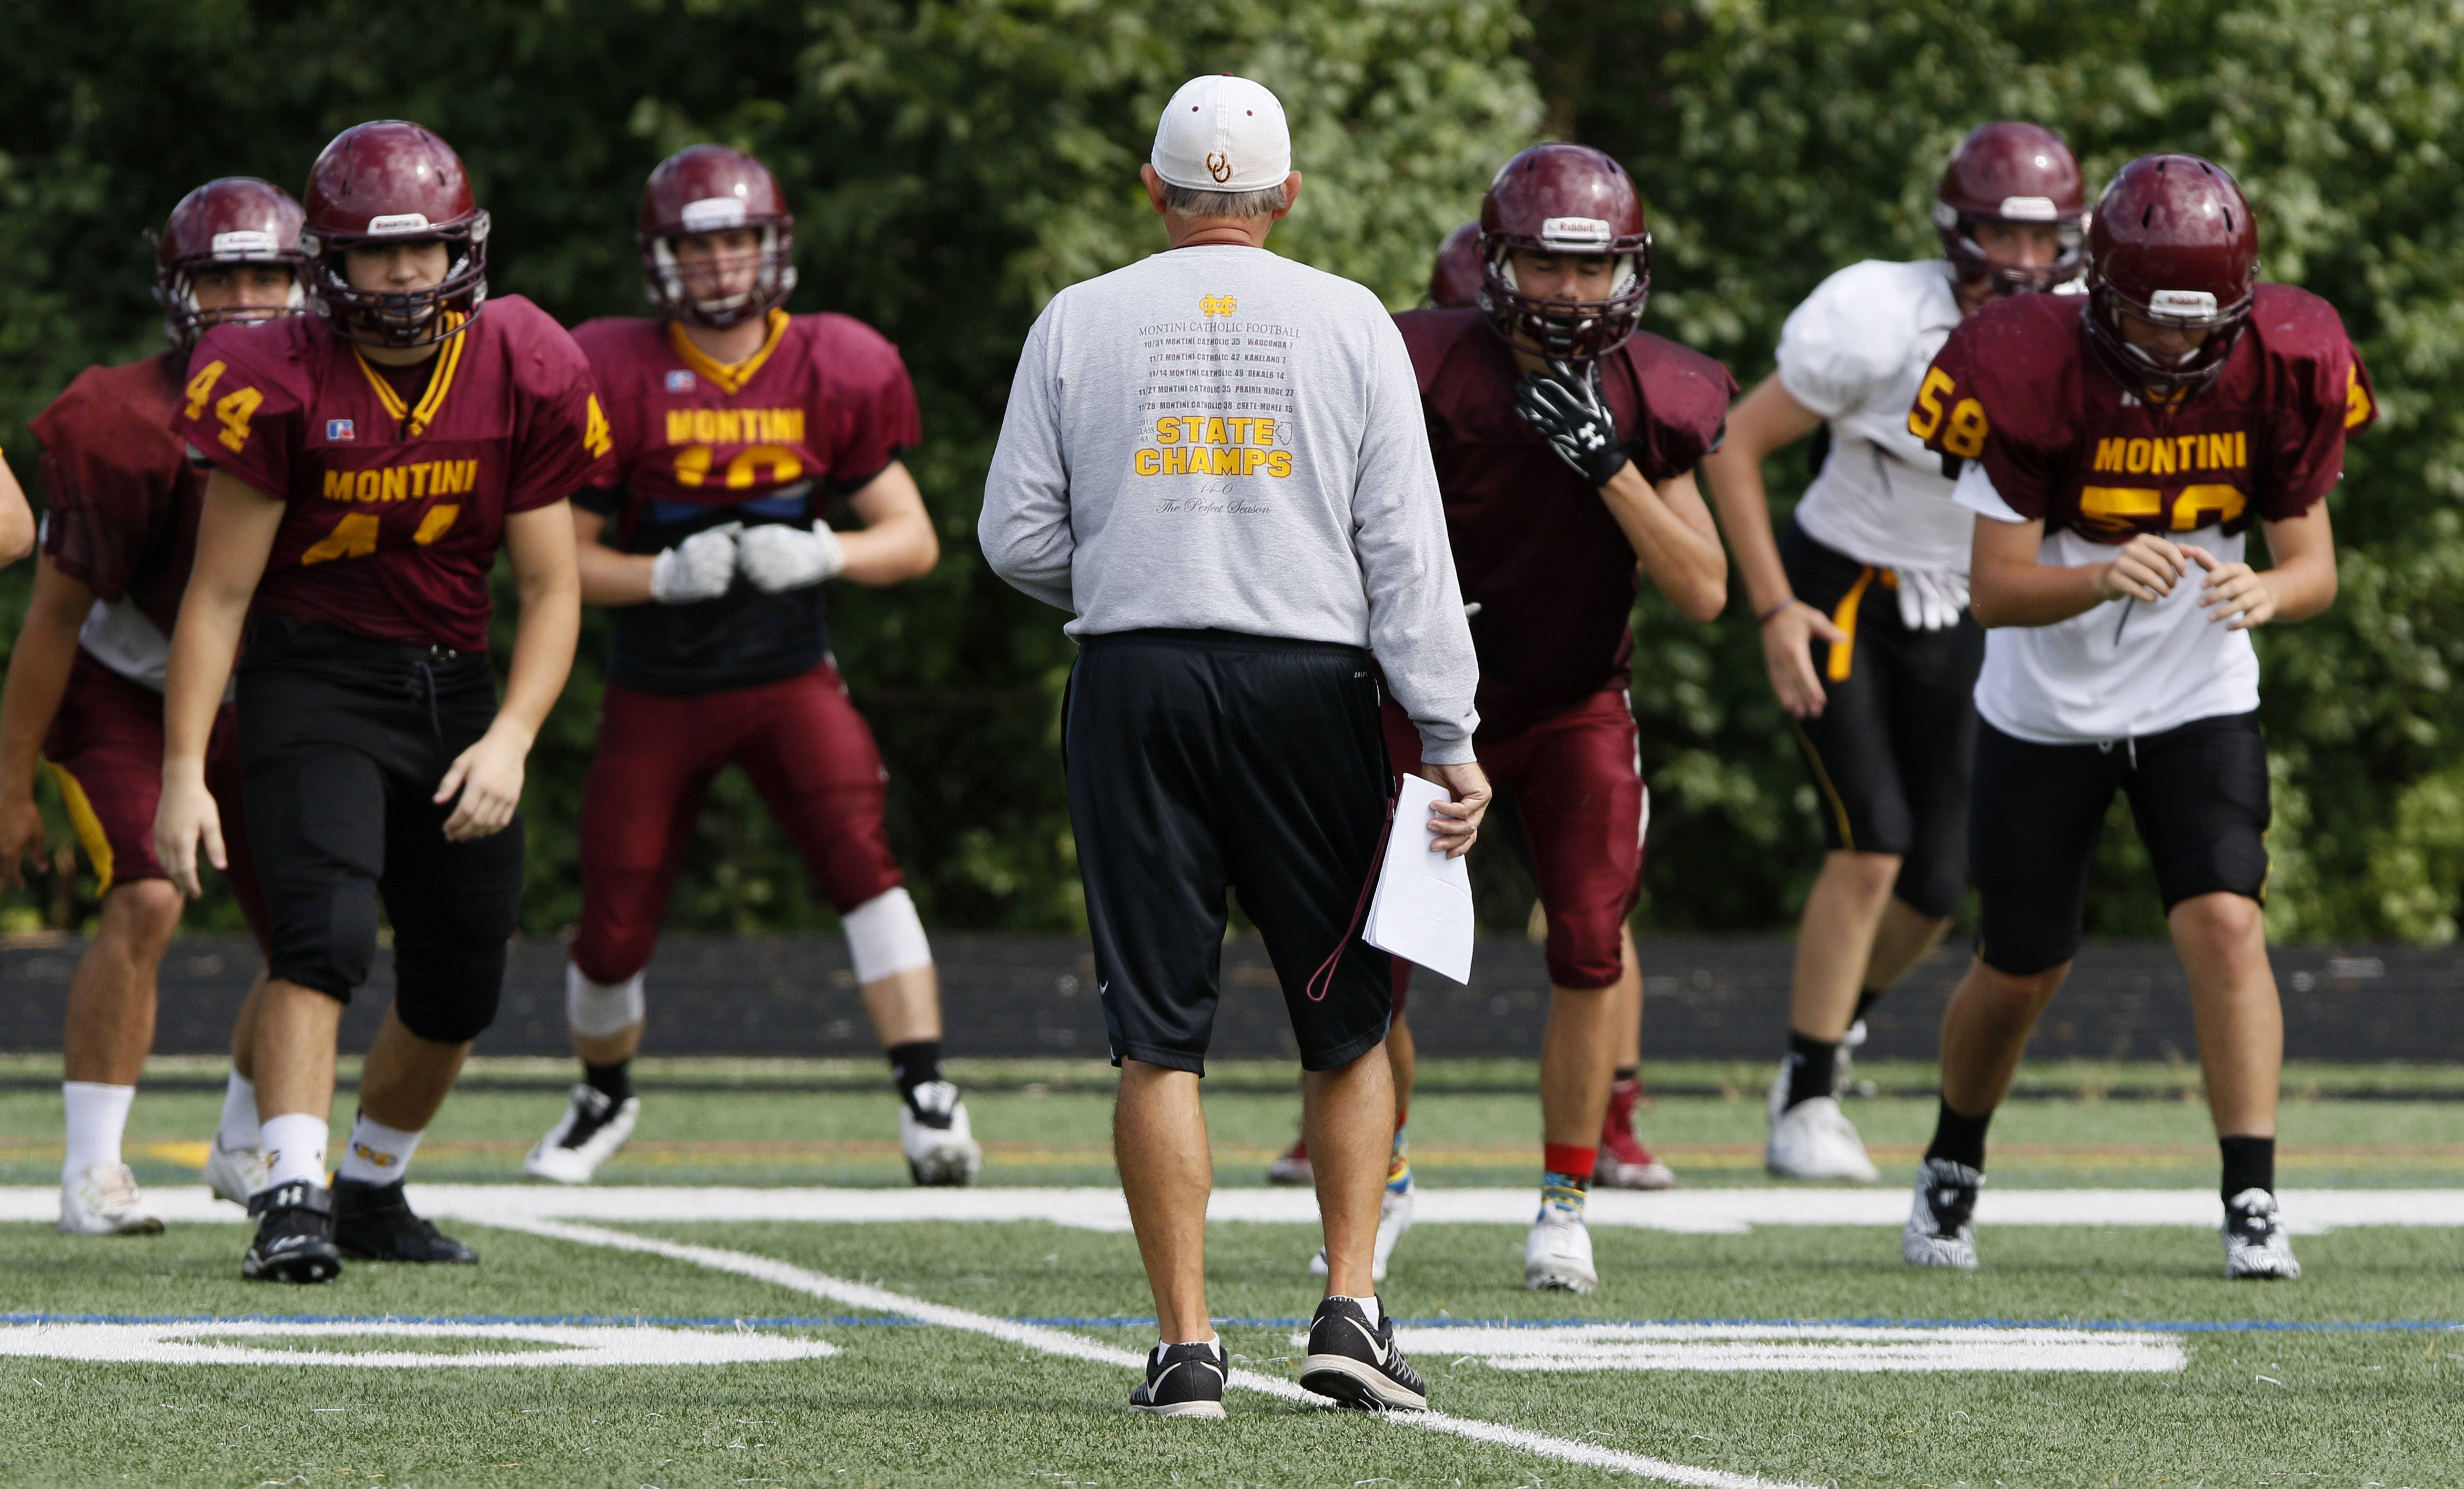 Montini Catholic football coach Chris Andriano looks to defend last years' perfect season, where the Broncos won a state championship with a 14-0 record.